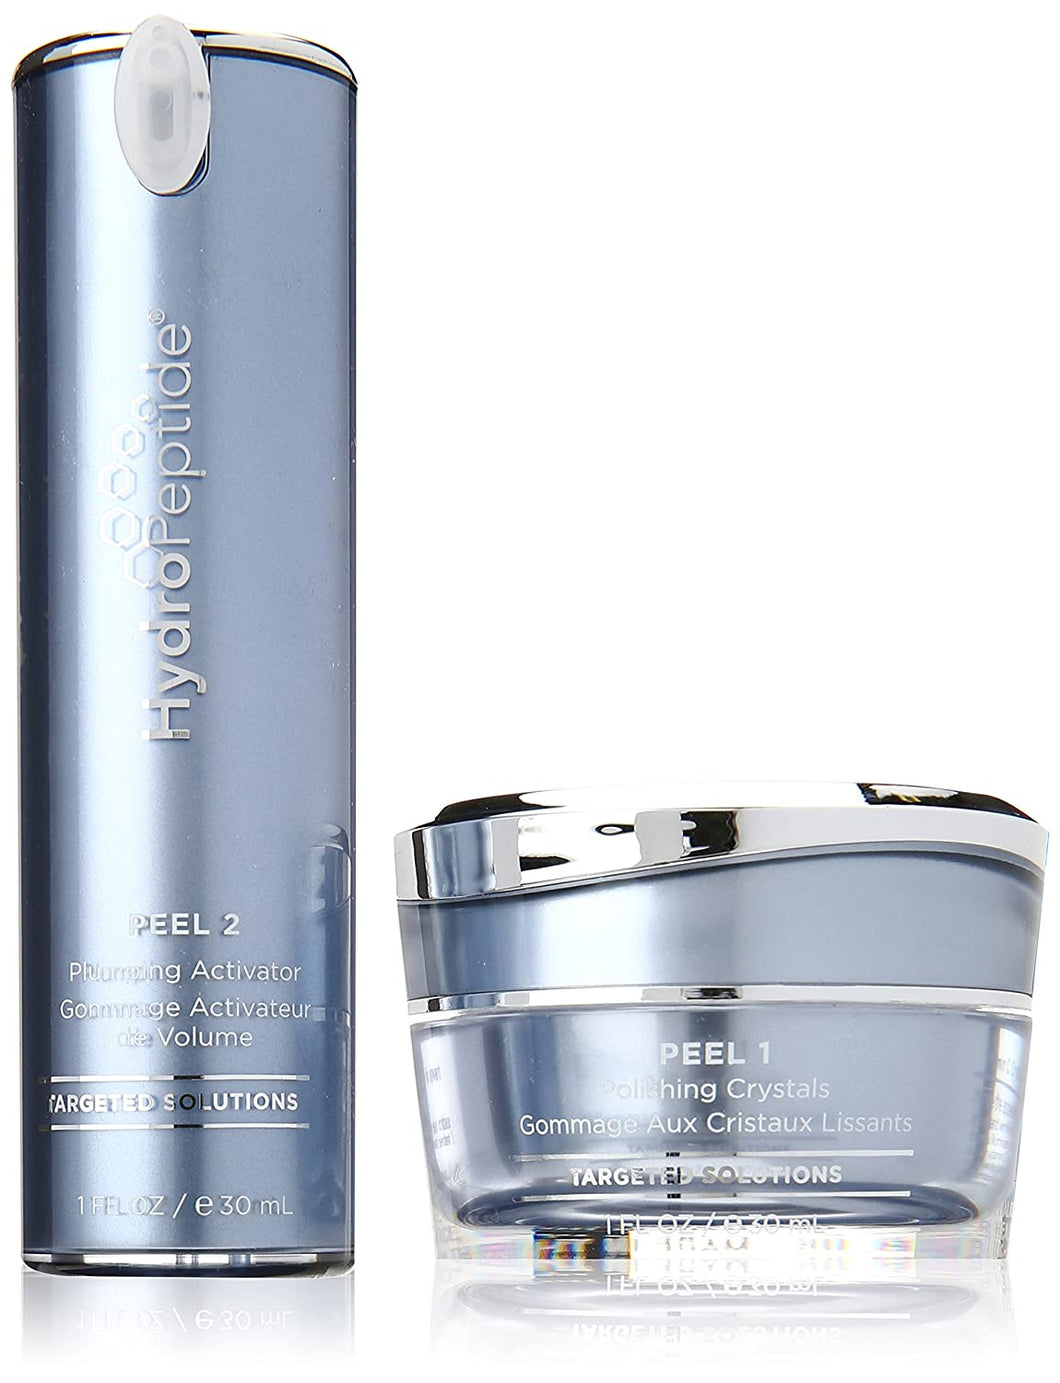 HydroPeptide Polish & Plump Face Peel 2 Step System